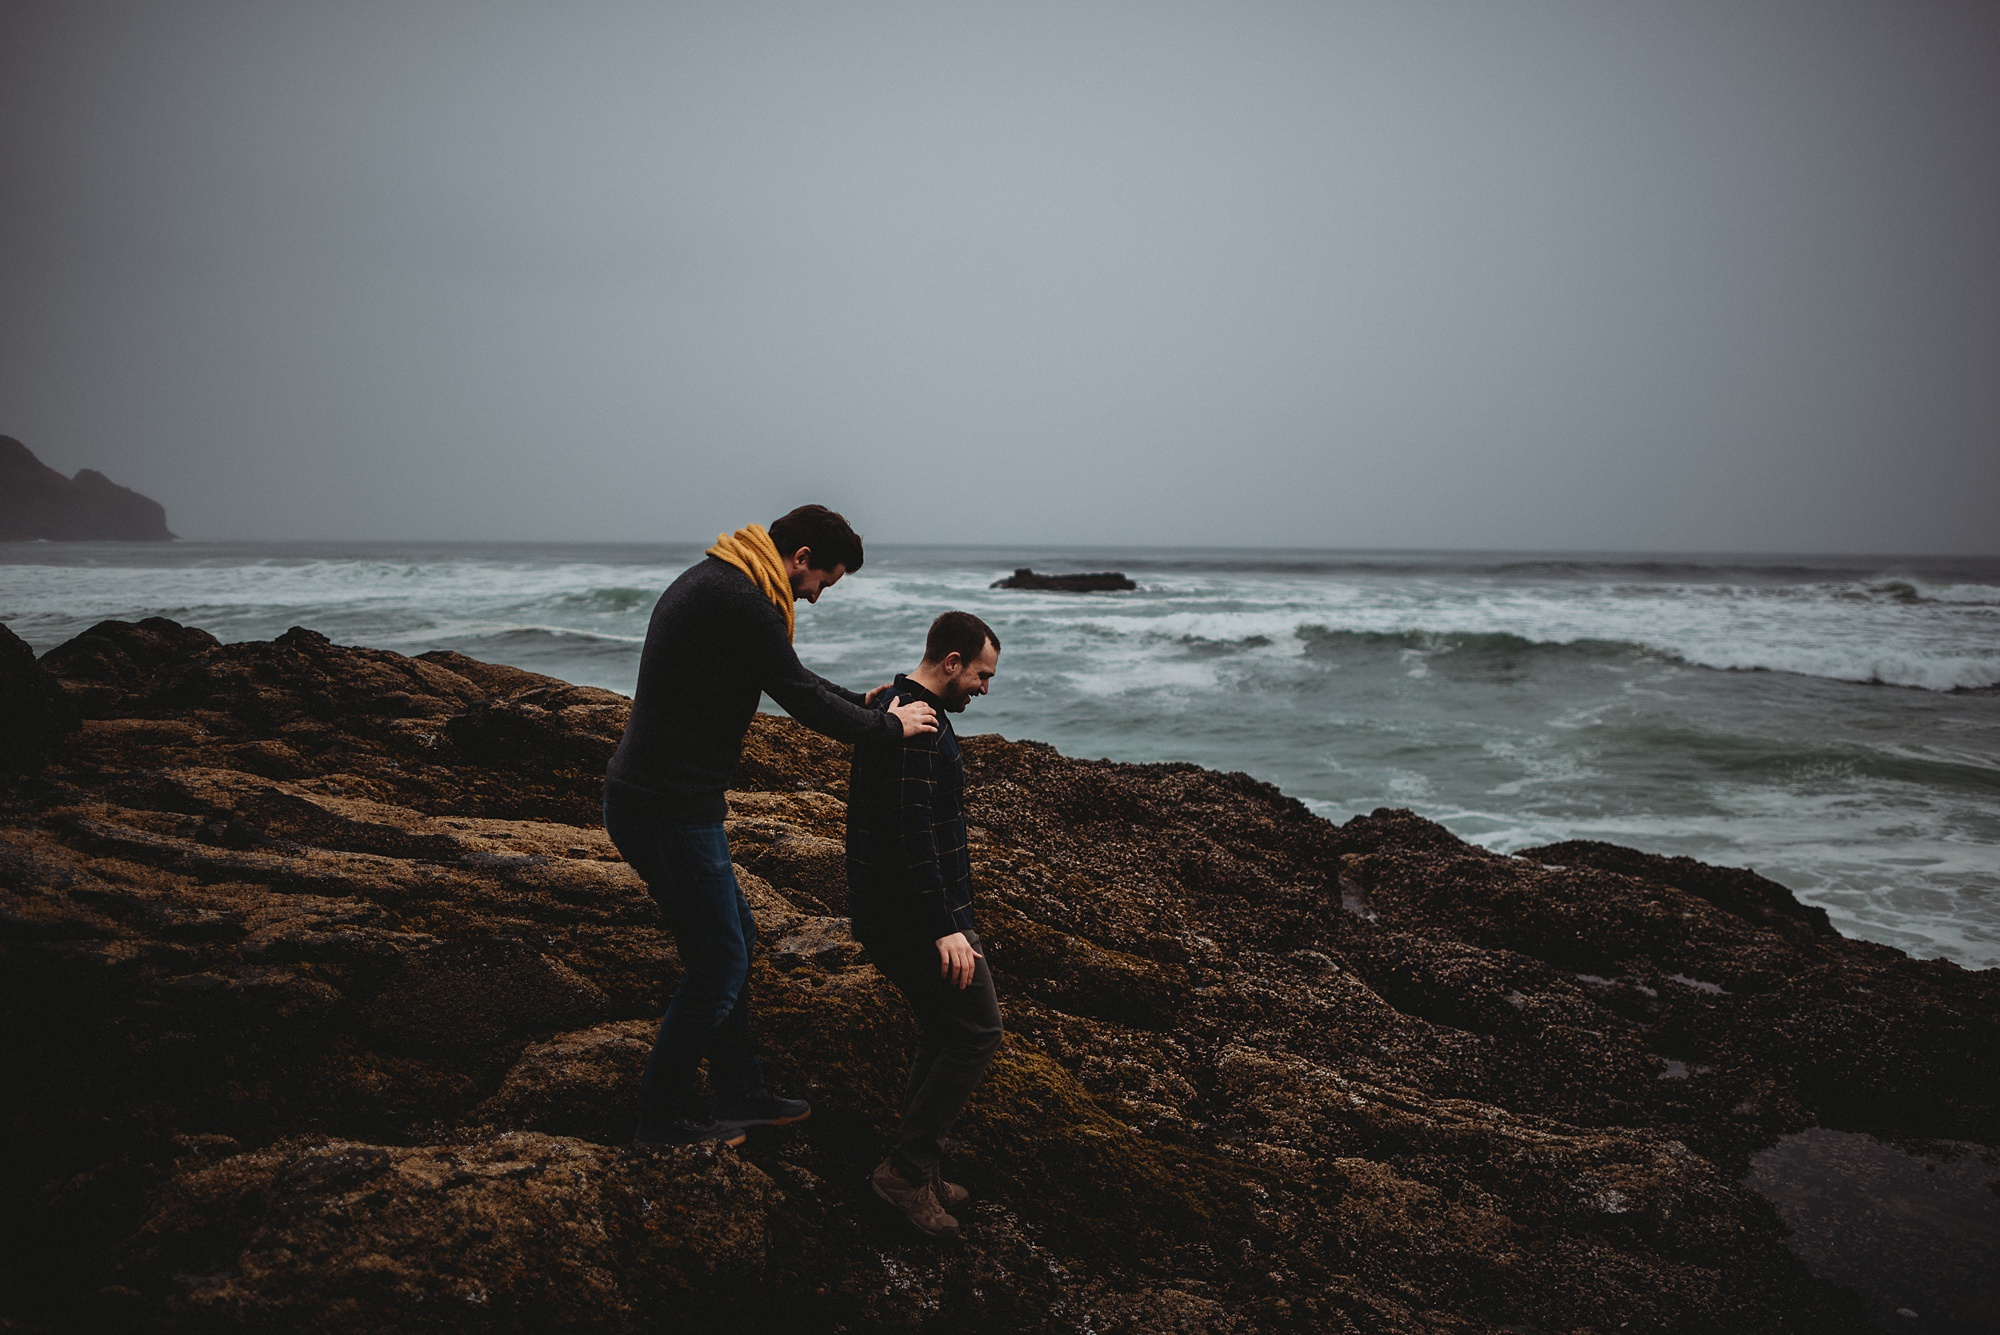 oregon-coast-elopement-couples-wedding_0003.JPG